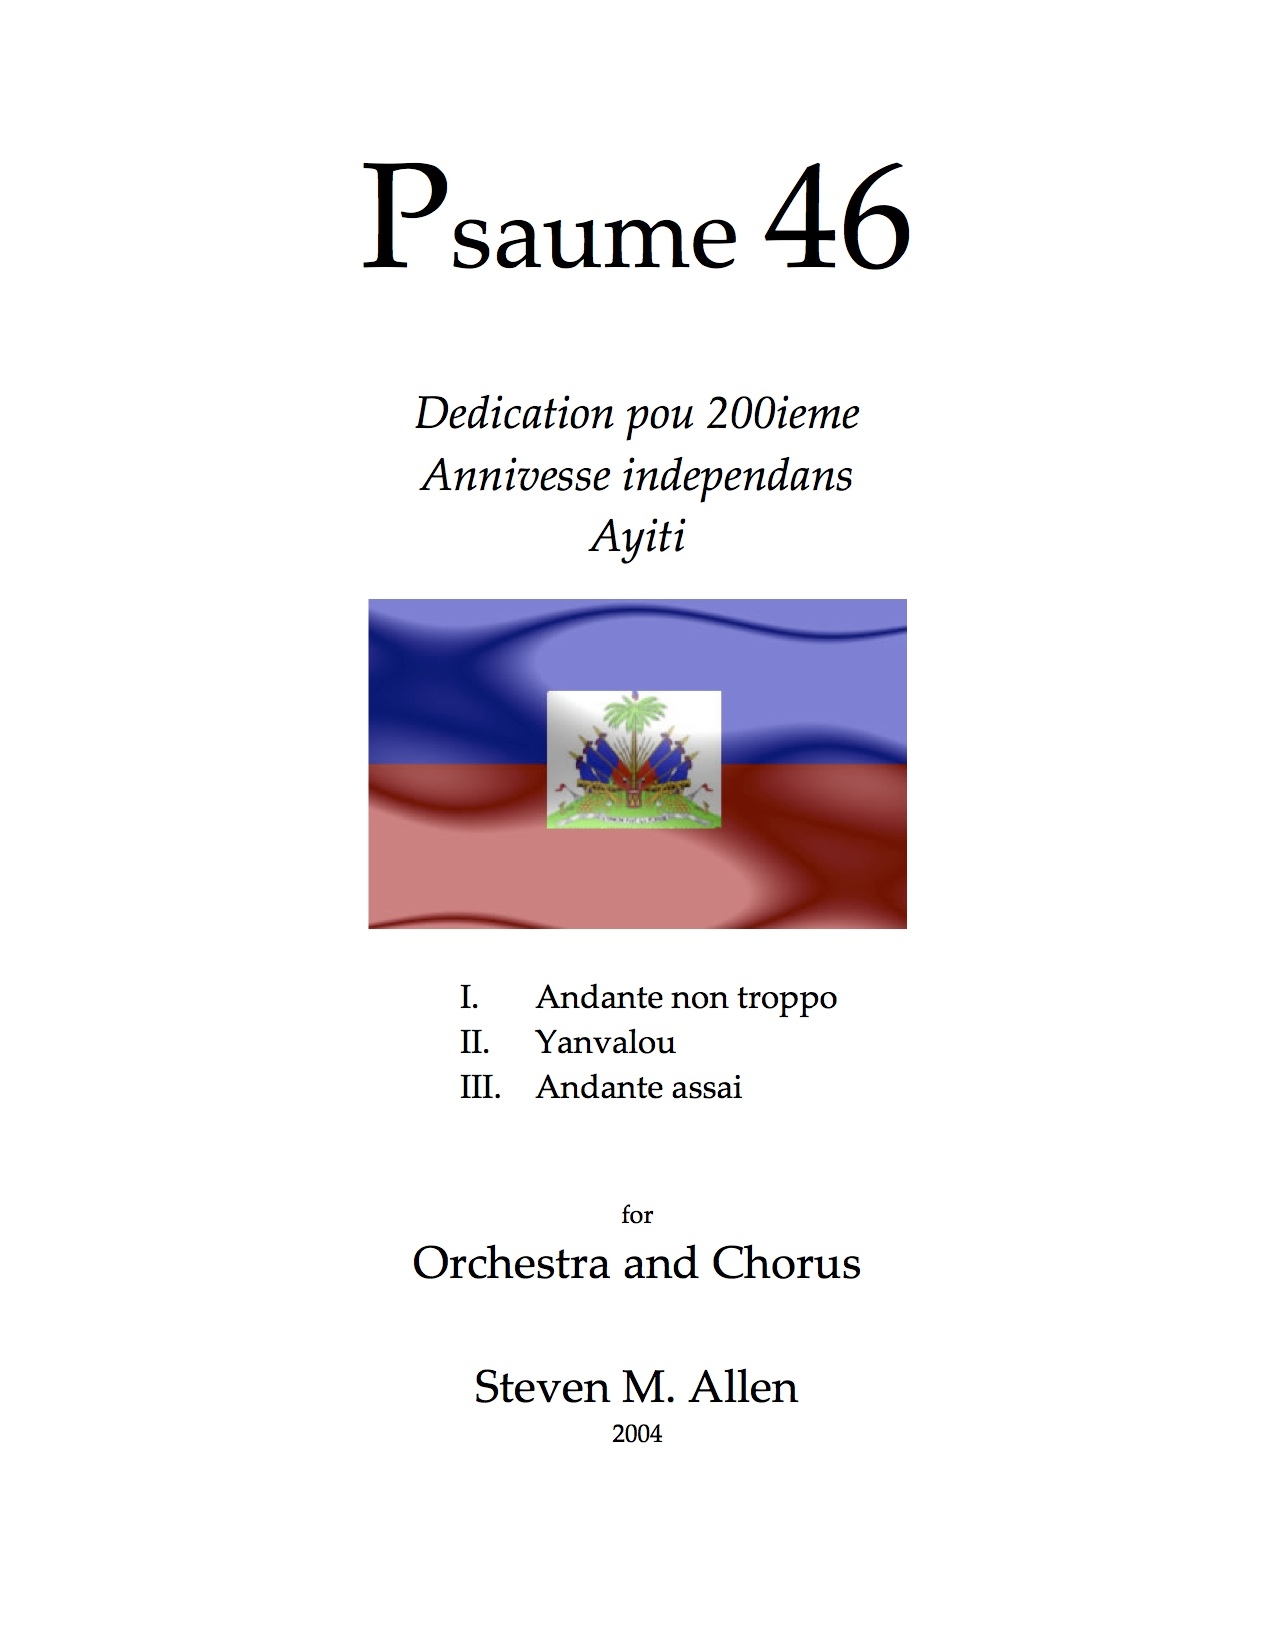 Psaume-46-Cover.jpg